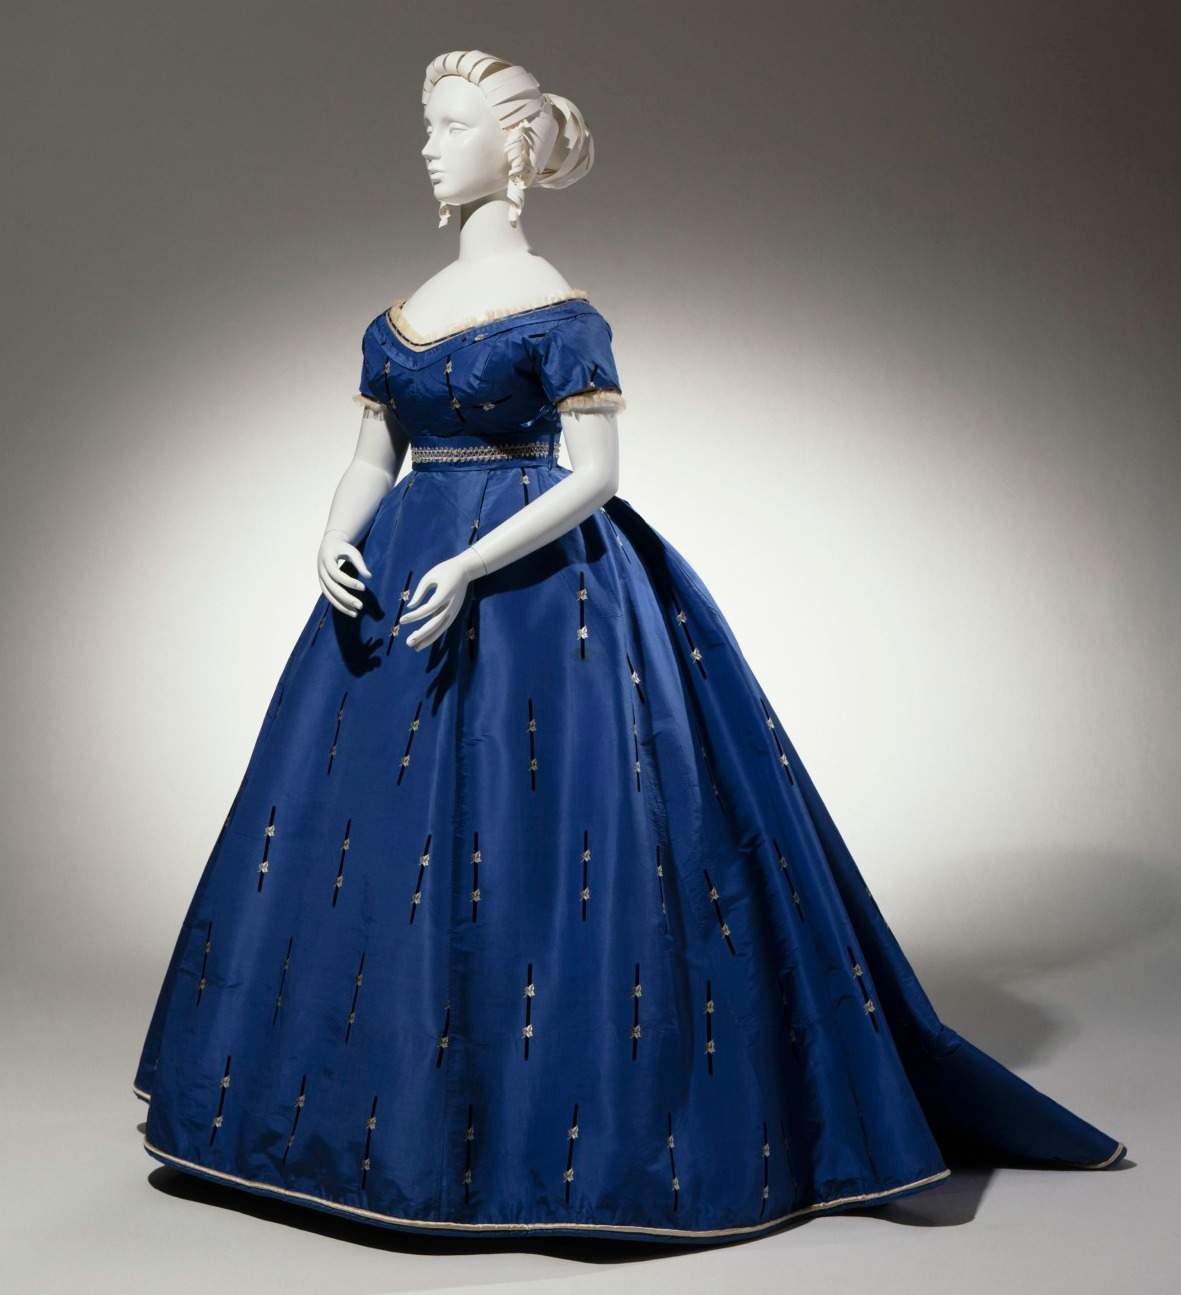 Shades of Victorian Fashion: Cerulean, Mazarine, Navy, and Blue ...